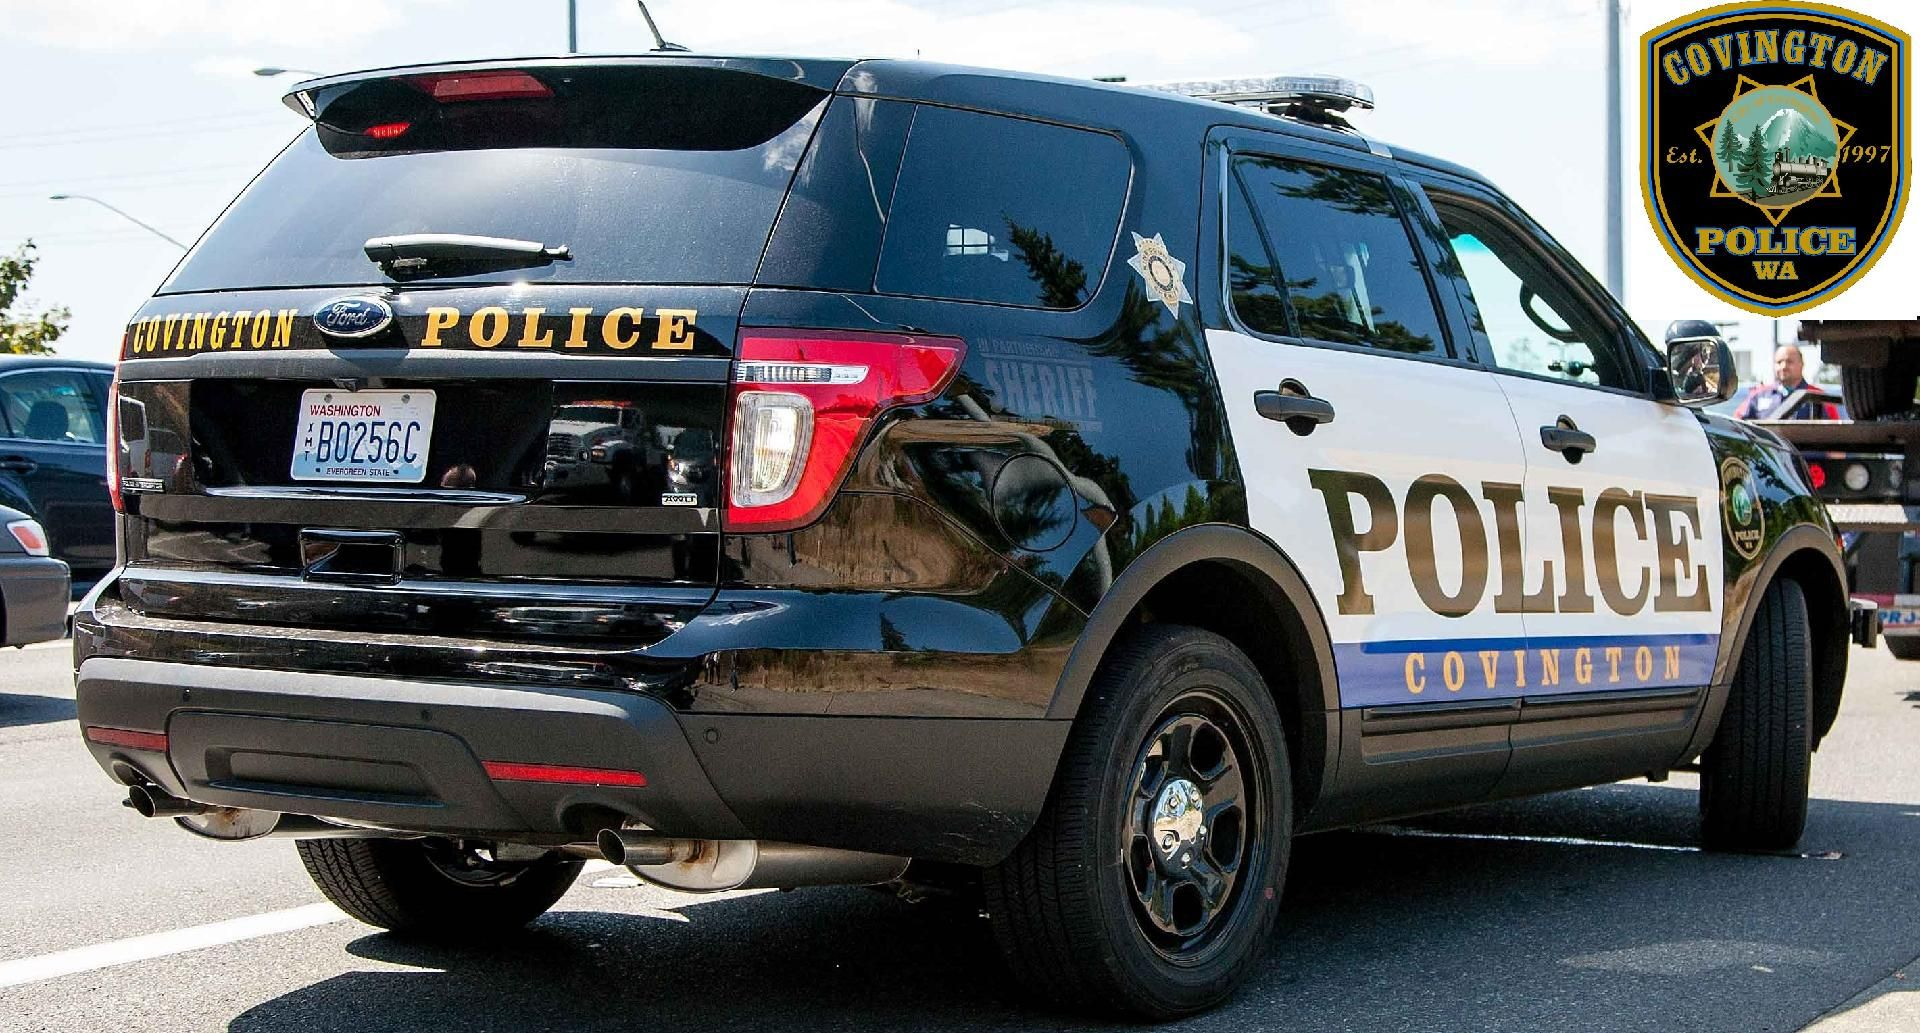 pin by anthony ortiz on police vehicles across the usa police cars police police dept pinterest